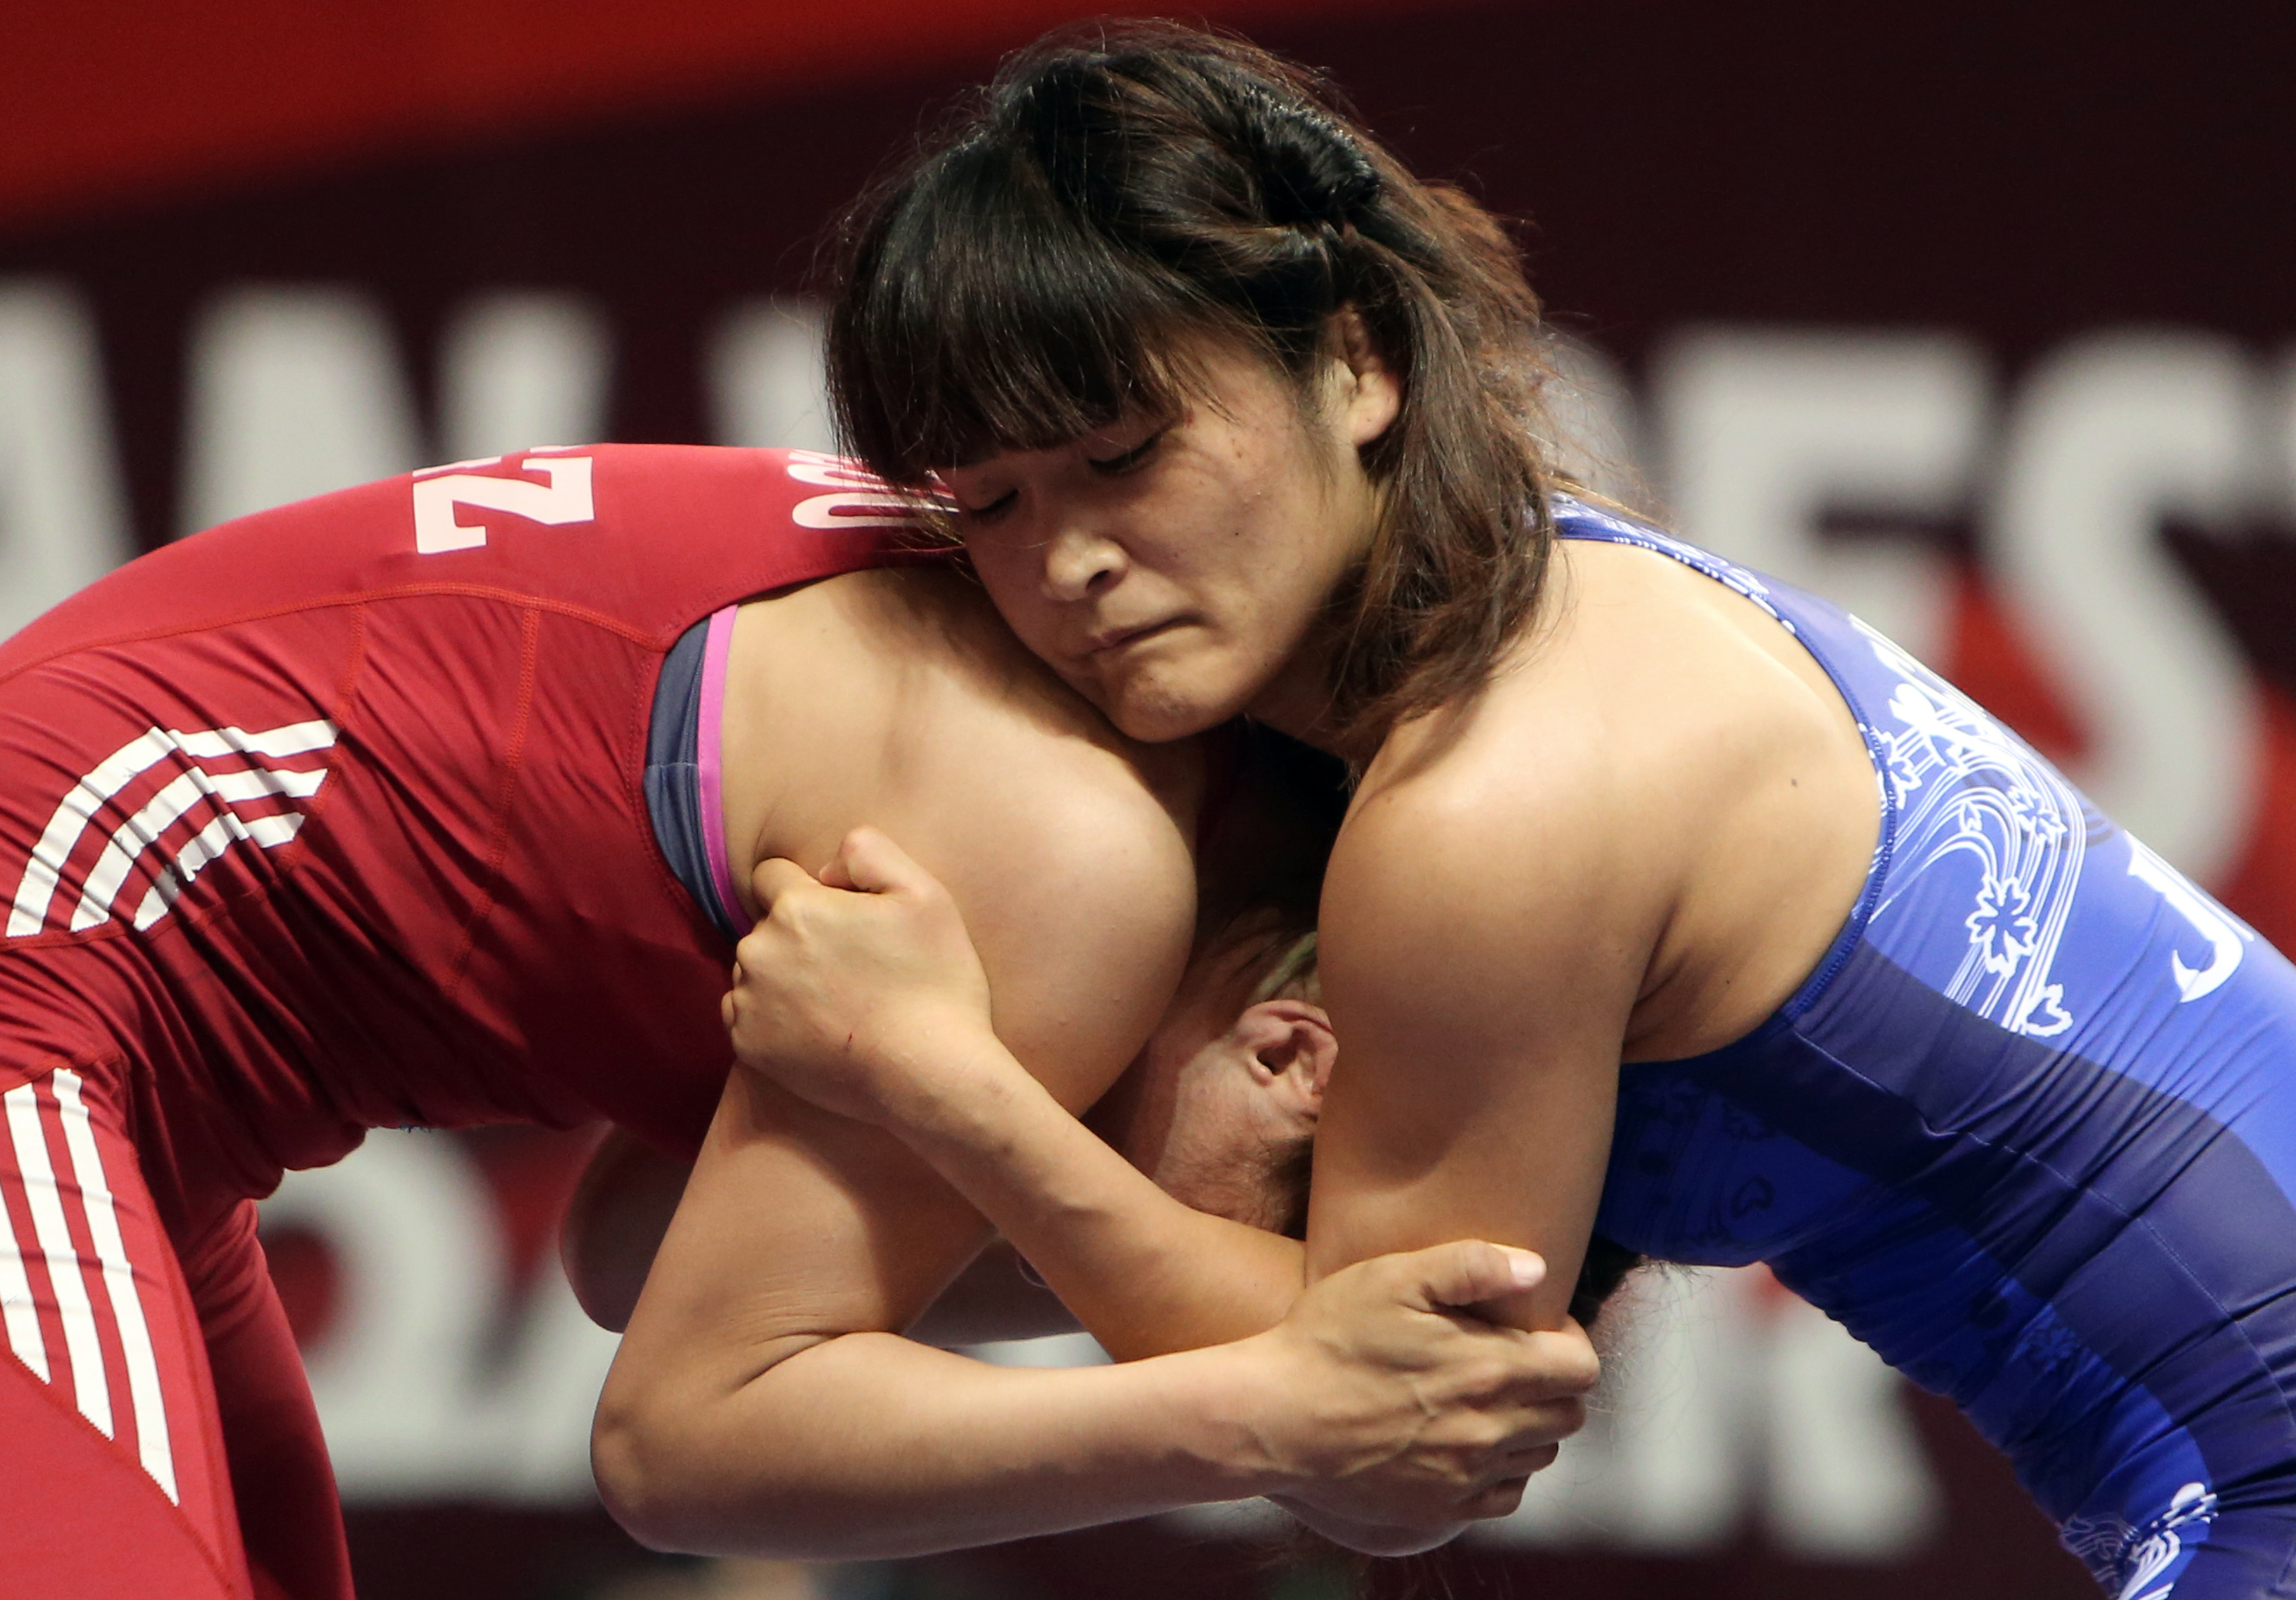 FILE - In this May 6, 2015, file photo, Japan's Kaori Icho, right, battles Kyrgyzstan's Aisuluu Tynybekova of Kyrgyzstan during the final of the 65 kilogram category at the Asian Championship of wrestling in Doha, Qatar. Japans Kaori Icho and Saori Yoshid